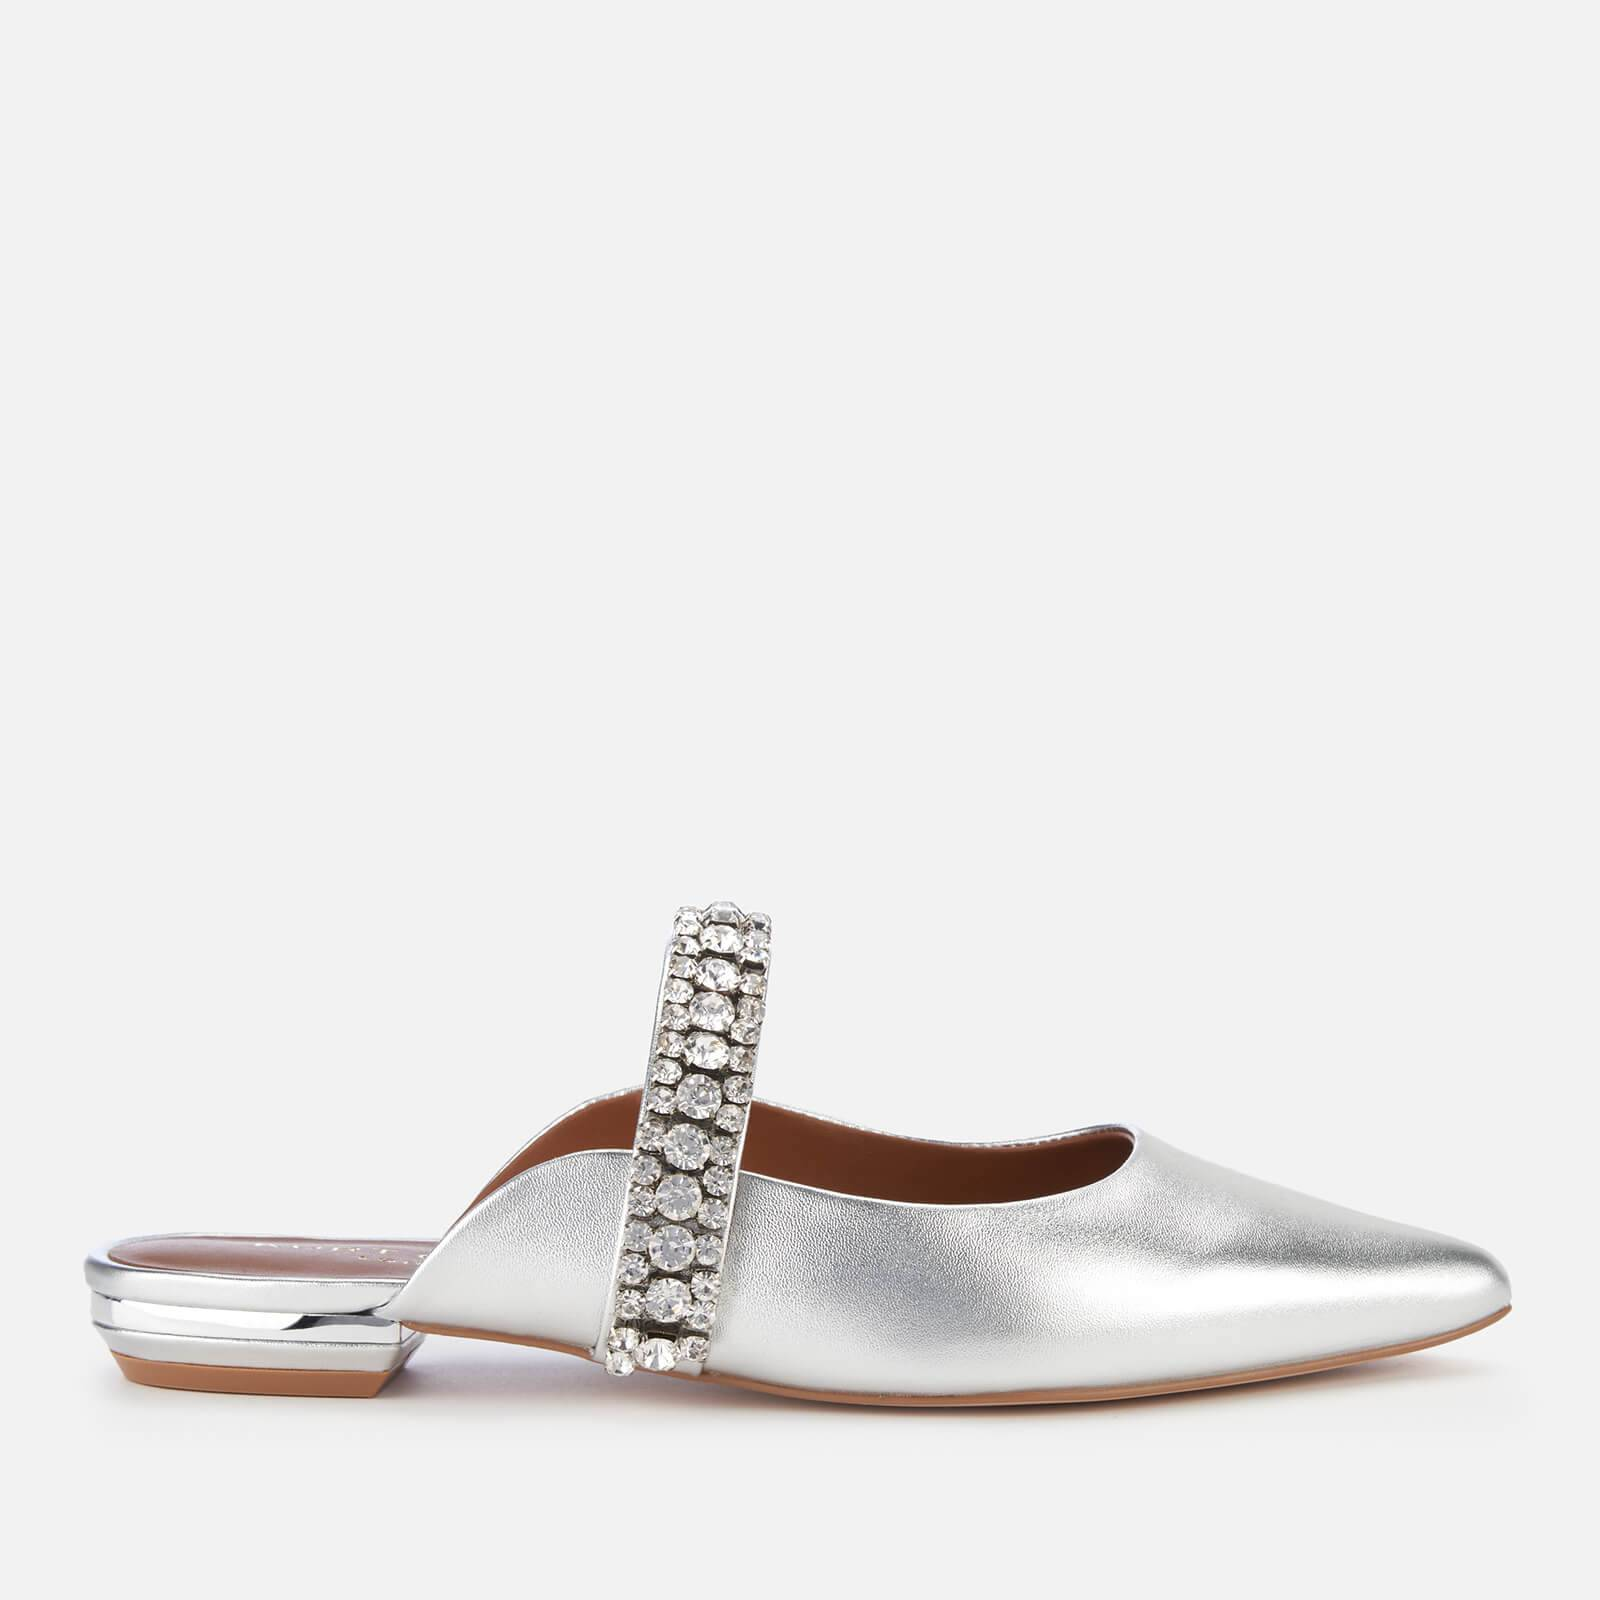 Kurt Geiger London Women's Princely Leather Pointed Mules - Silver - UK 4 - Silver